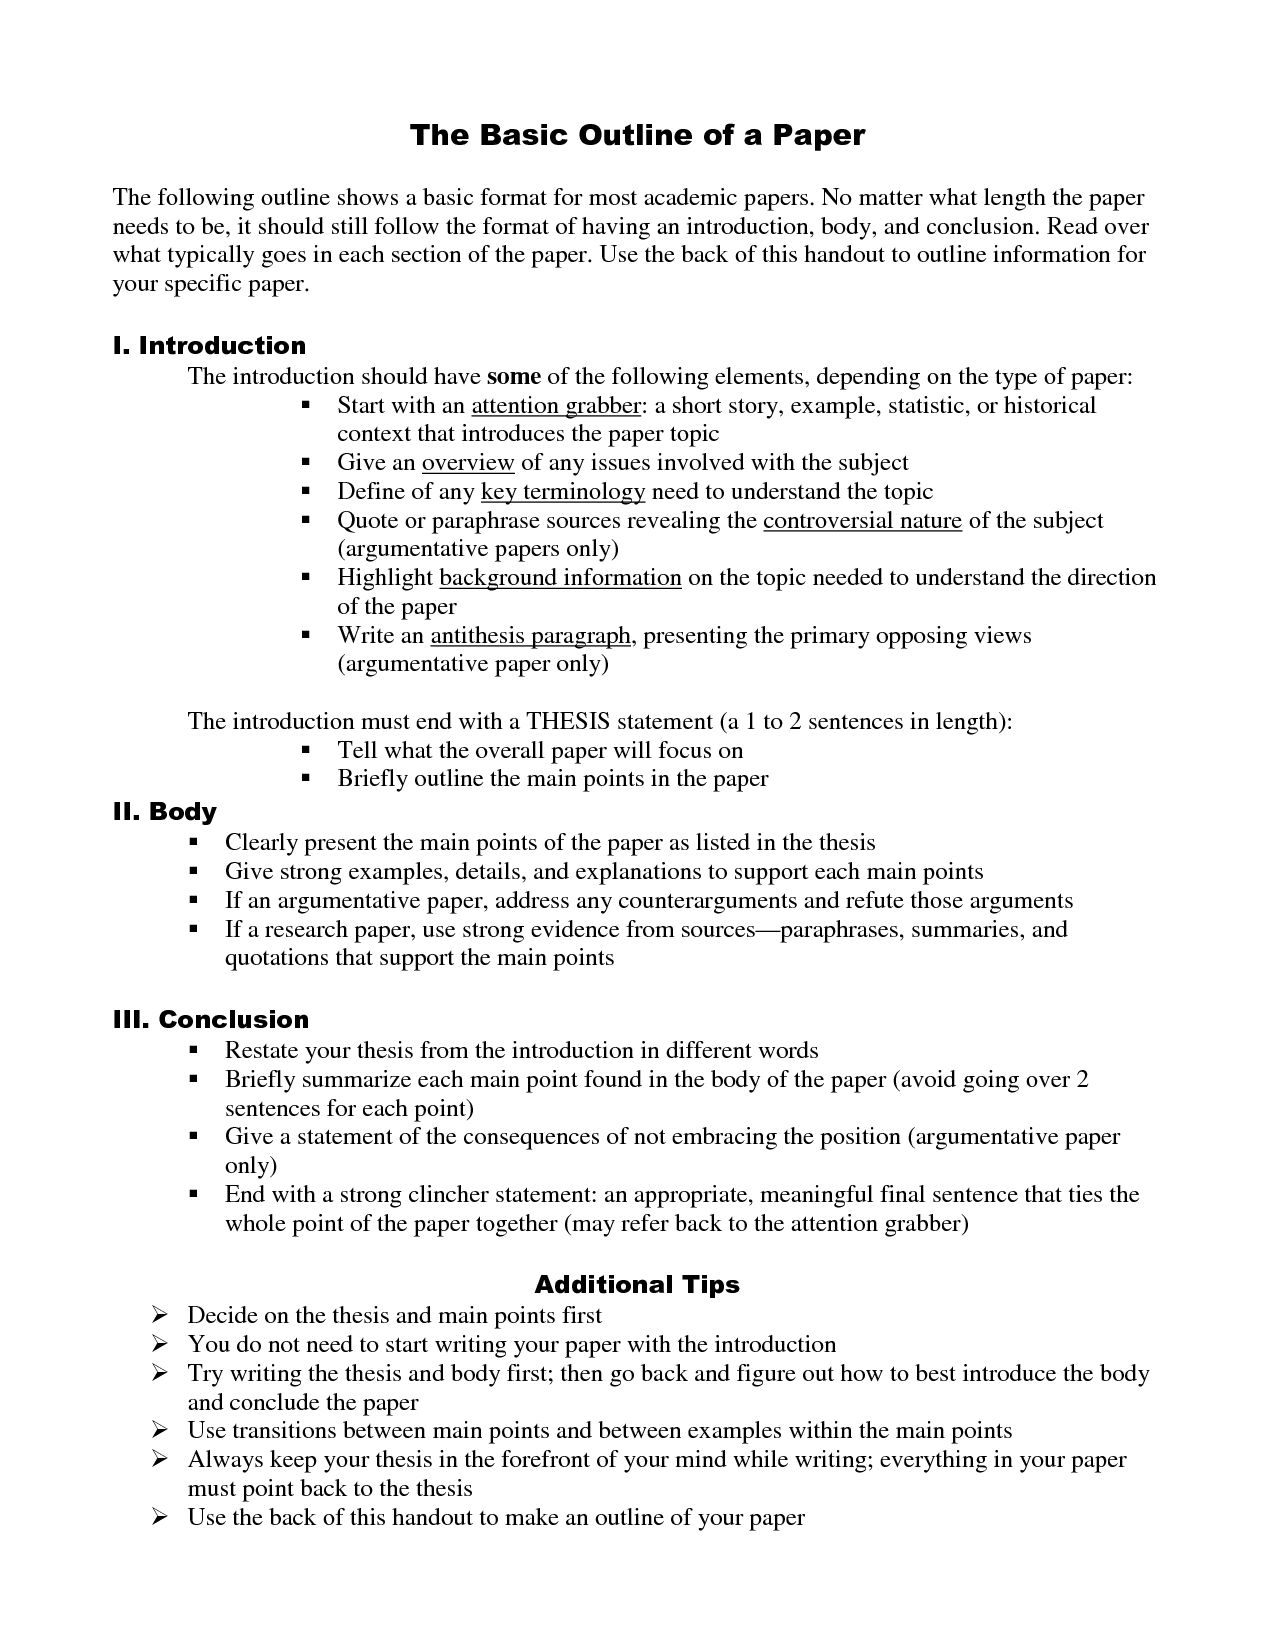 senior paper outline | RESEARCH PAPER STUDENT SAMPLE OUTLINE I II